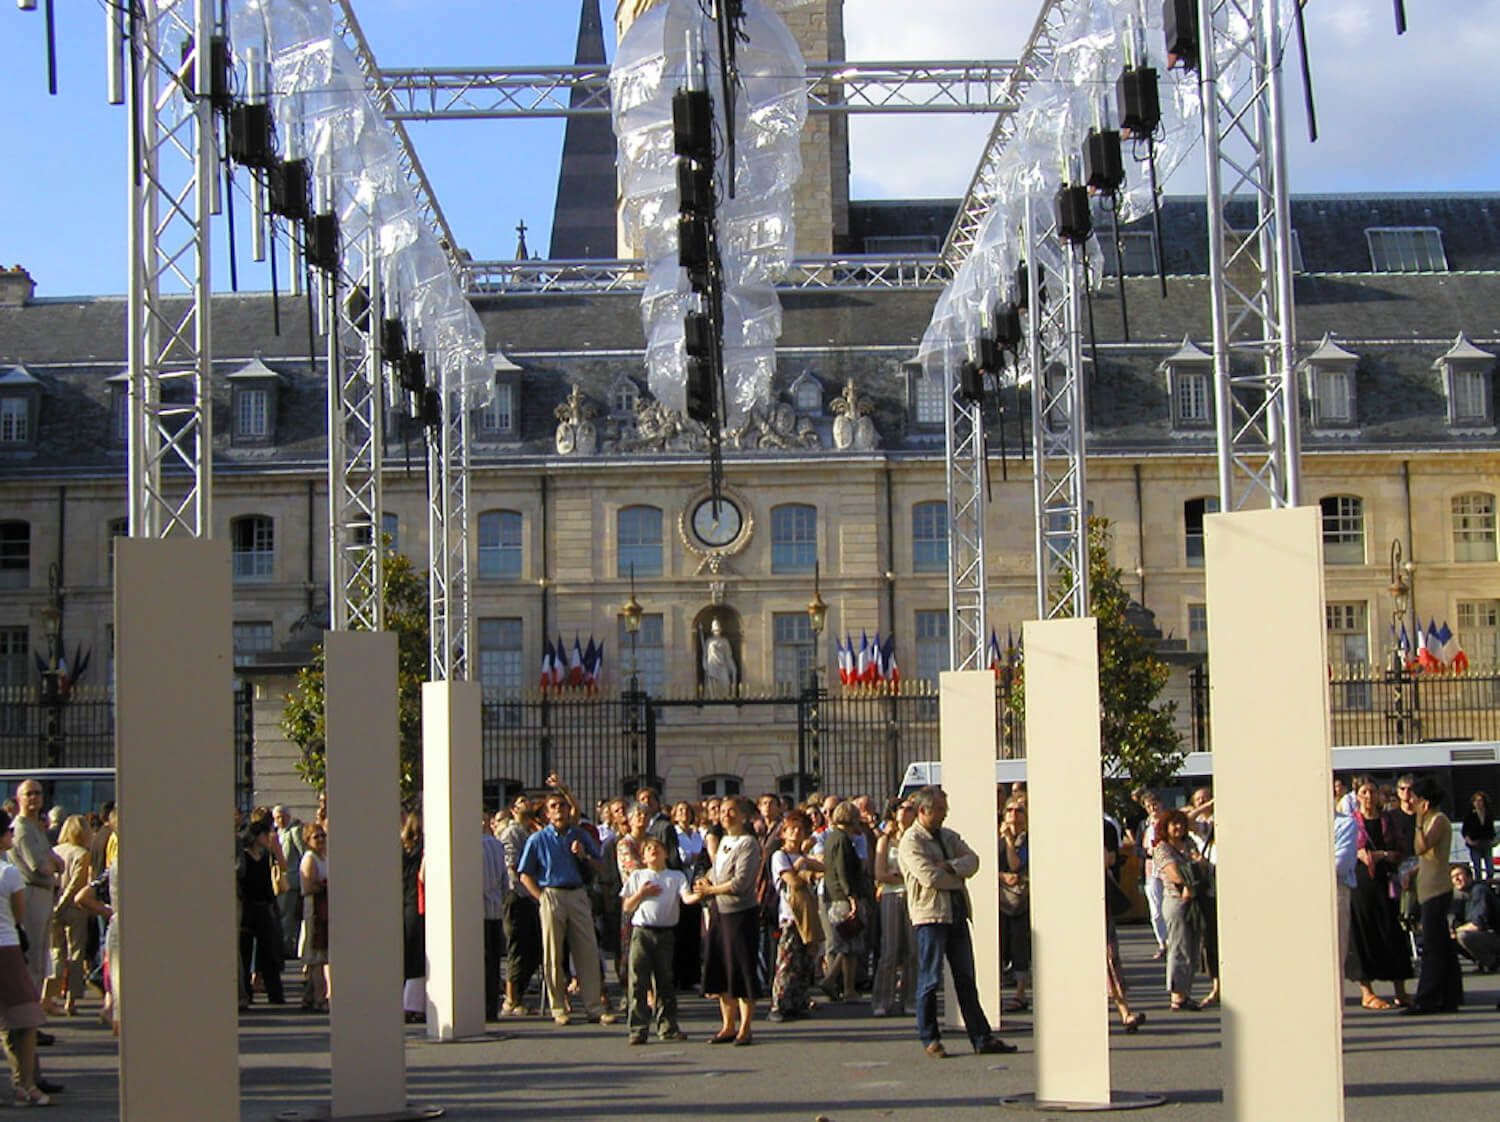 Photo montrant public les yeux en l'air regardant une installation en plein air de machines suspendues